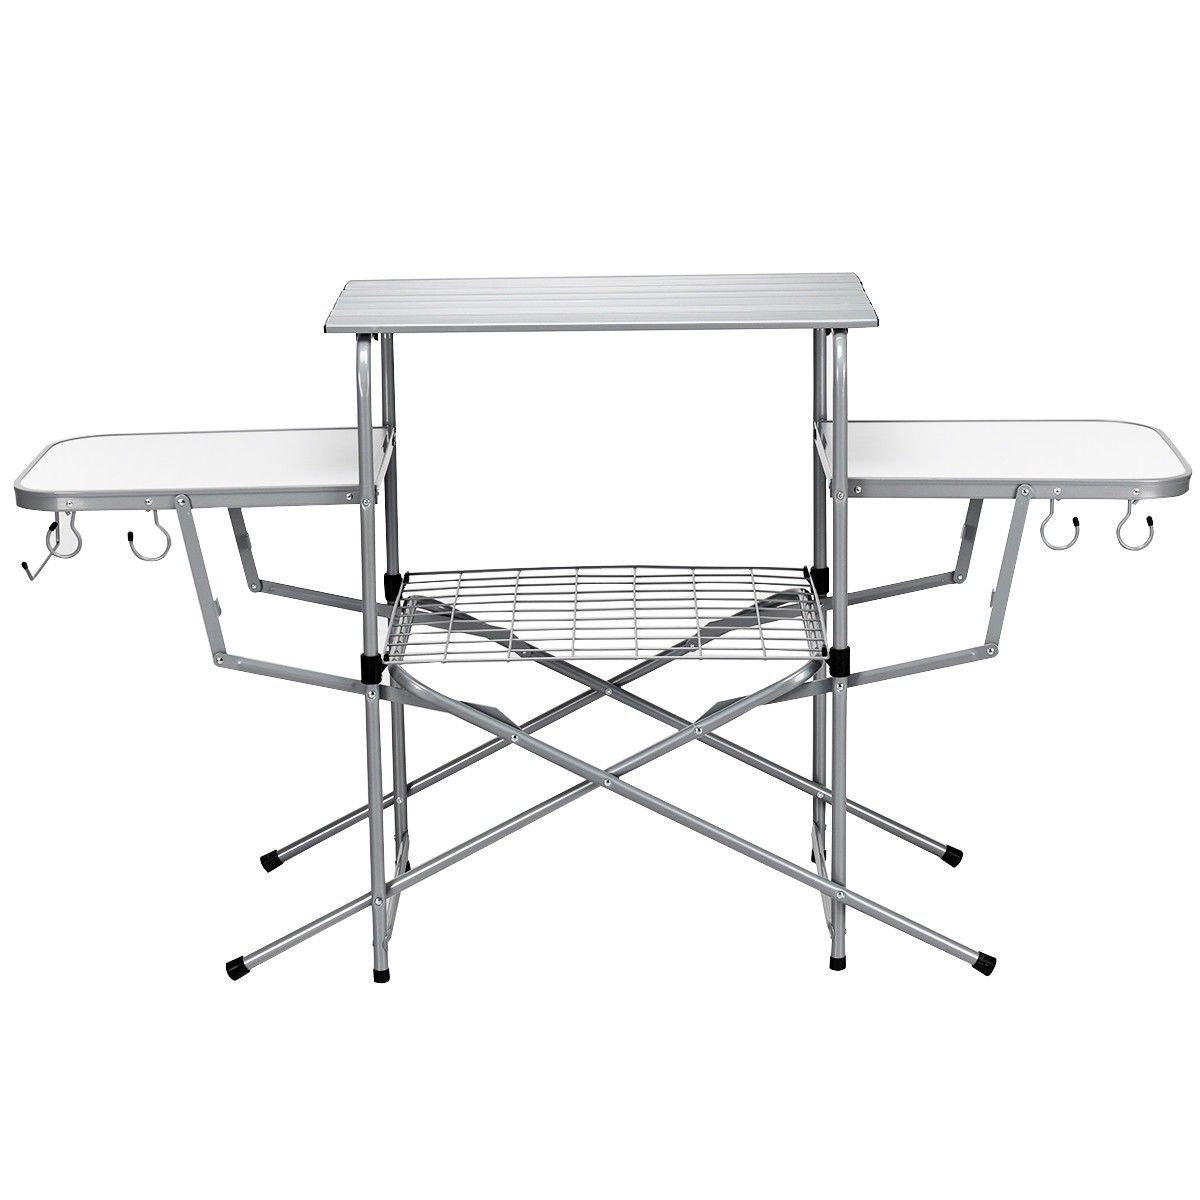 Foldable Outdoor Bbq Table Grilling Stand With Images Outdoor Kitchen Bbq Table Camping Table